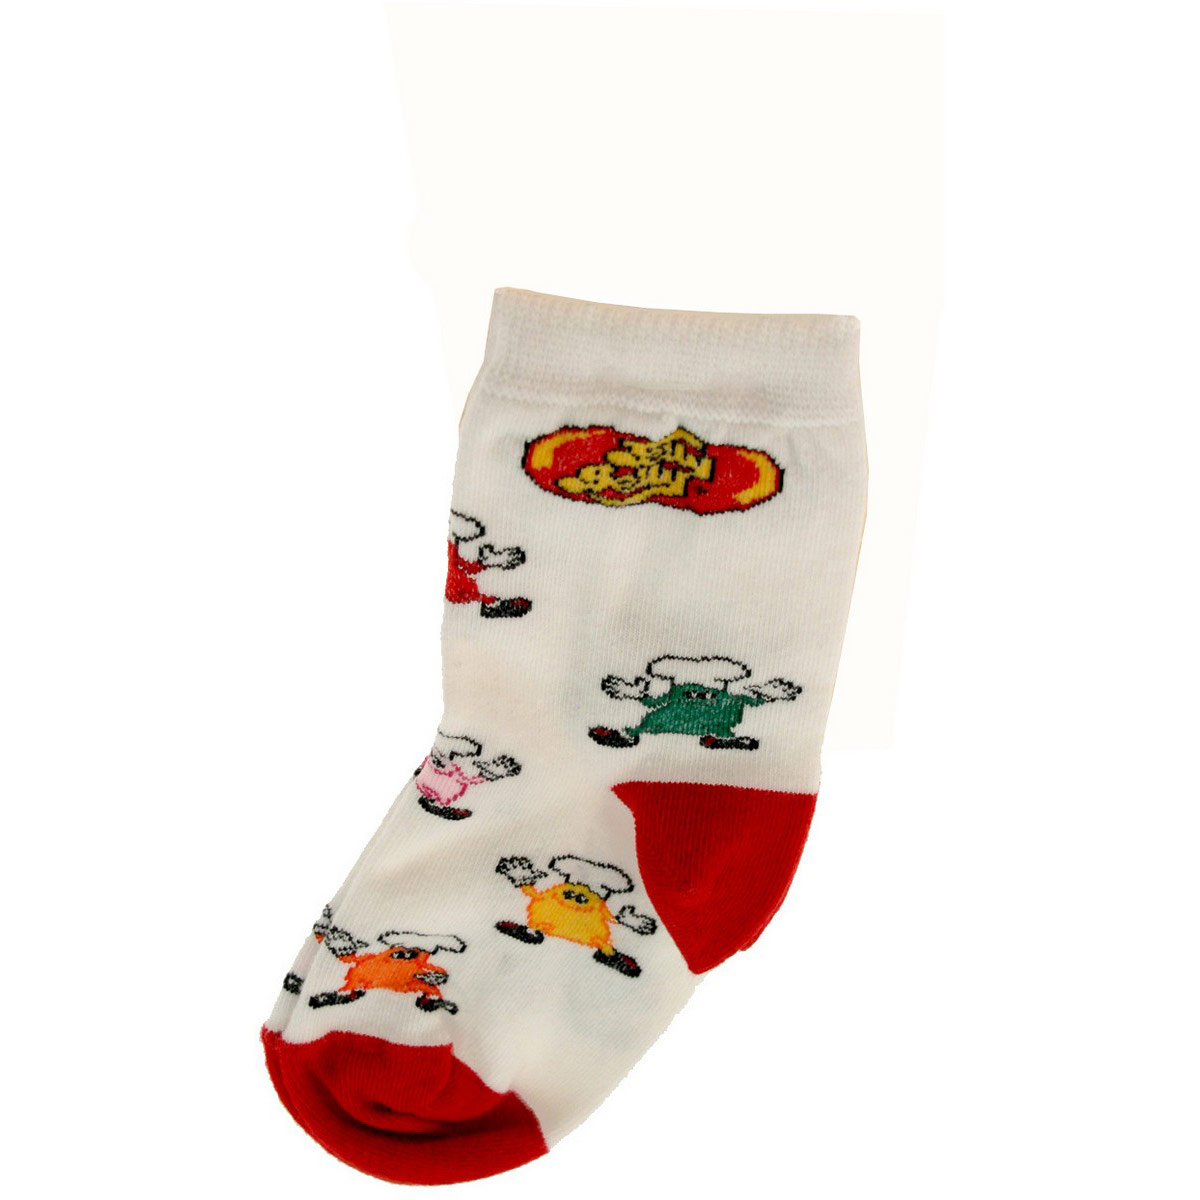 Mr. Jelly Belly Children's Socks - Medium